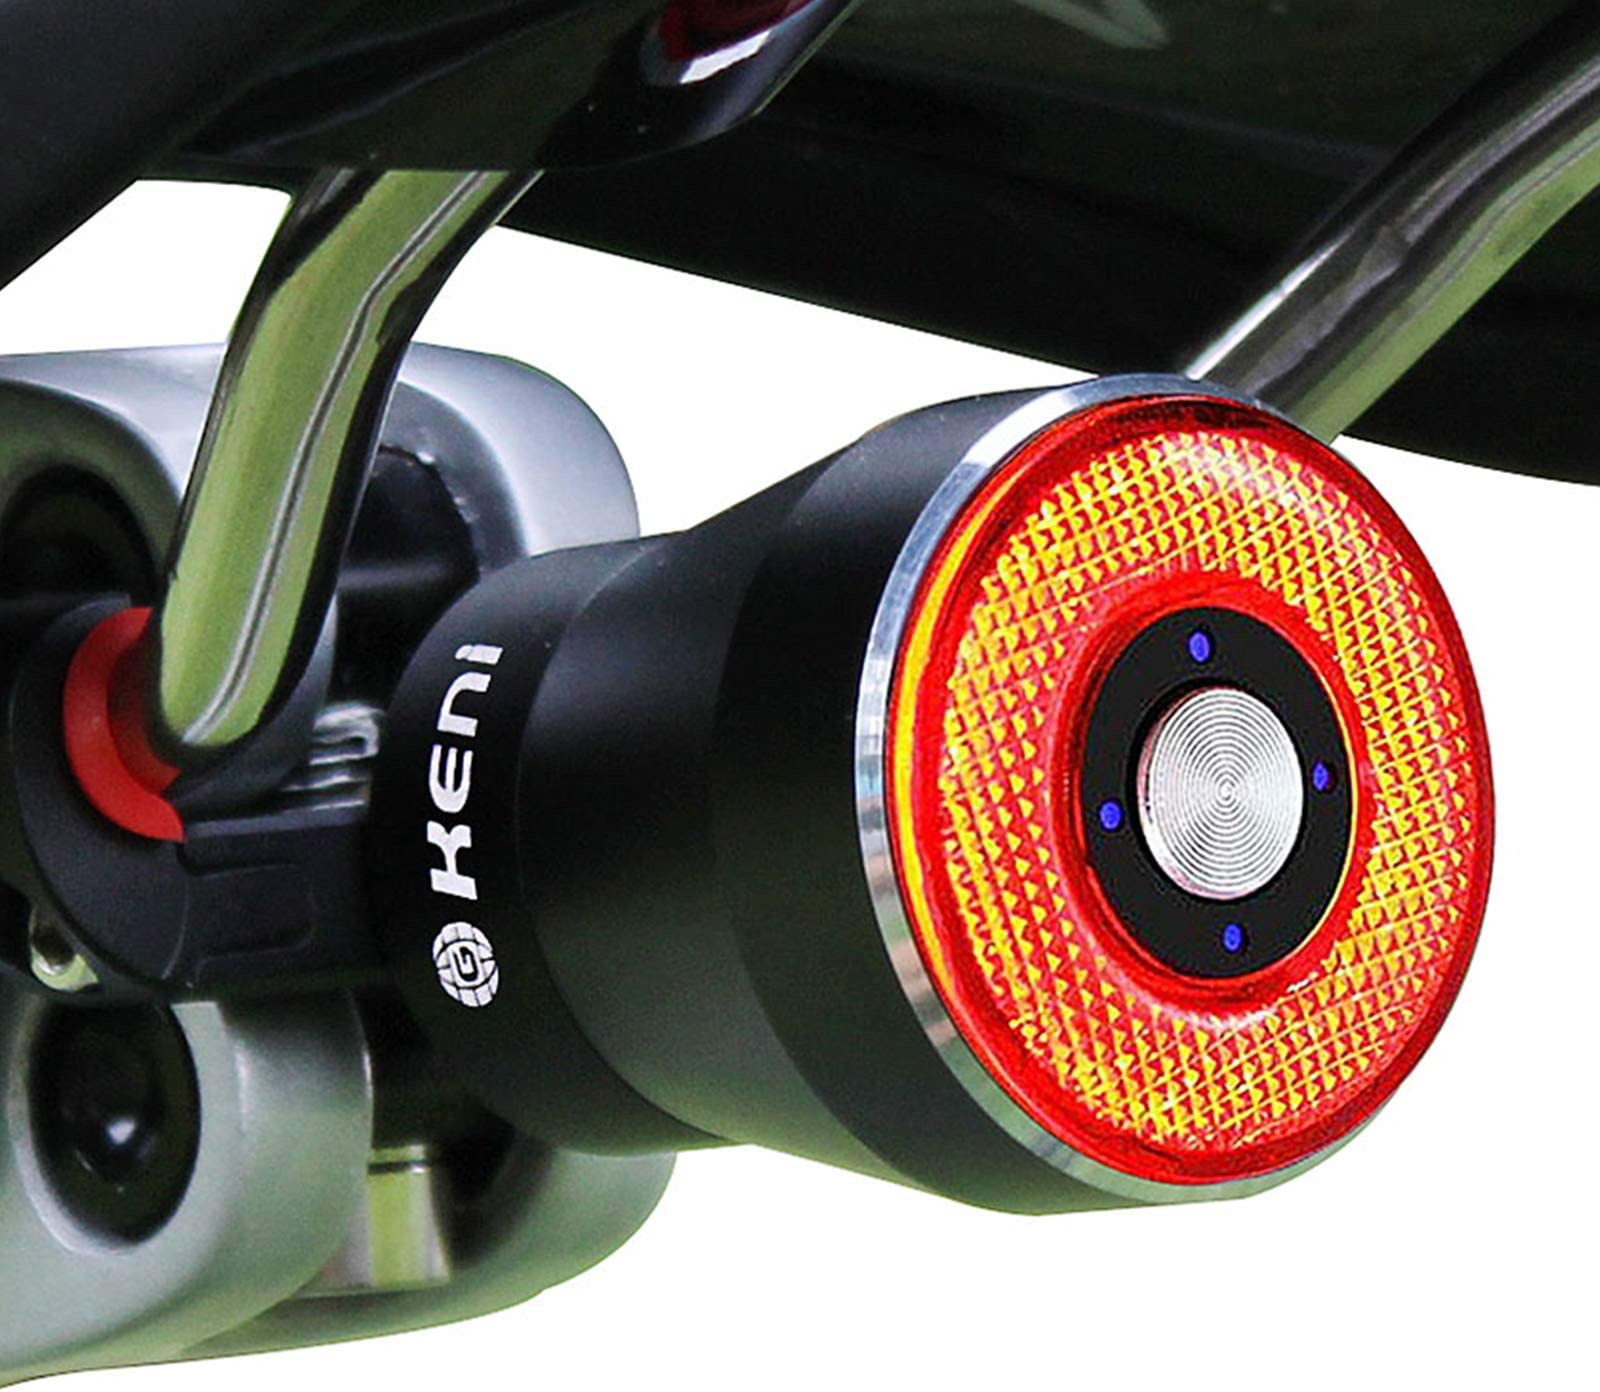 LED Bike Tail Light Bicycle Safety Cycling Warning Rear Lamp USB Rechargeable